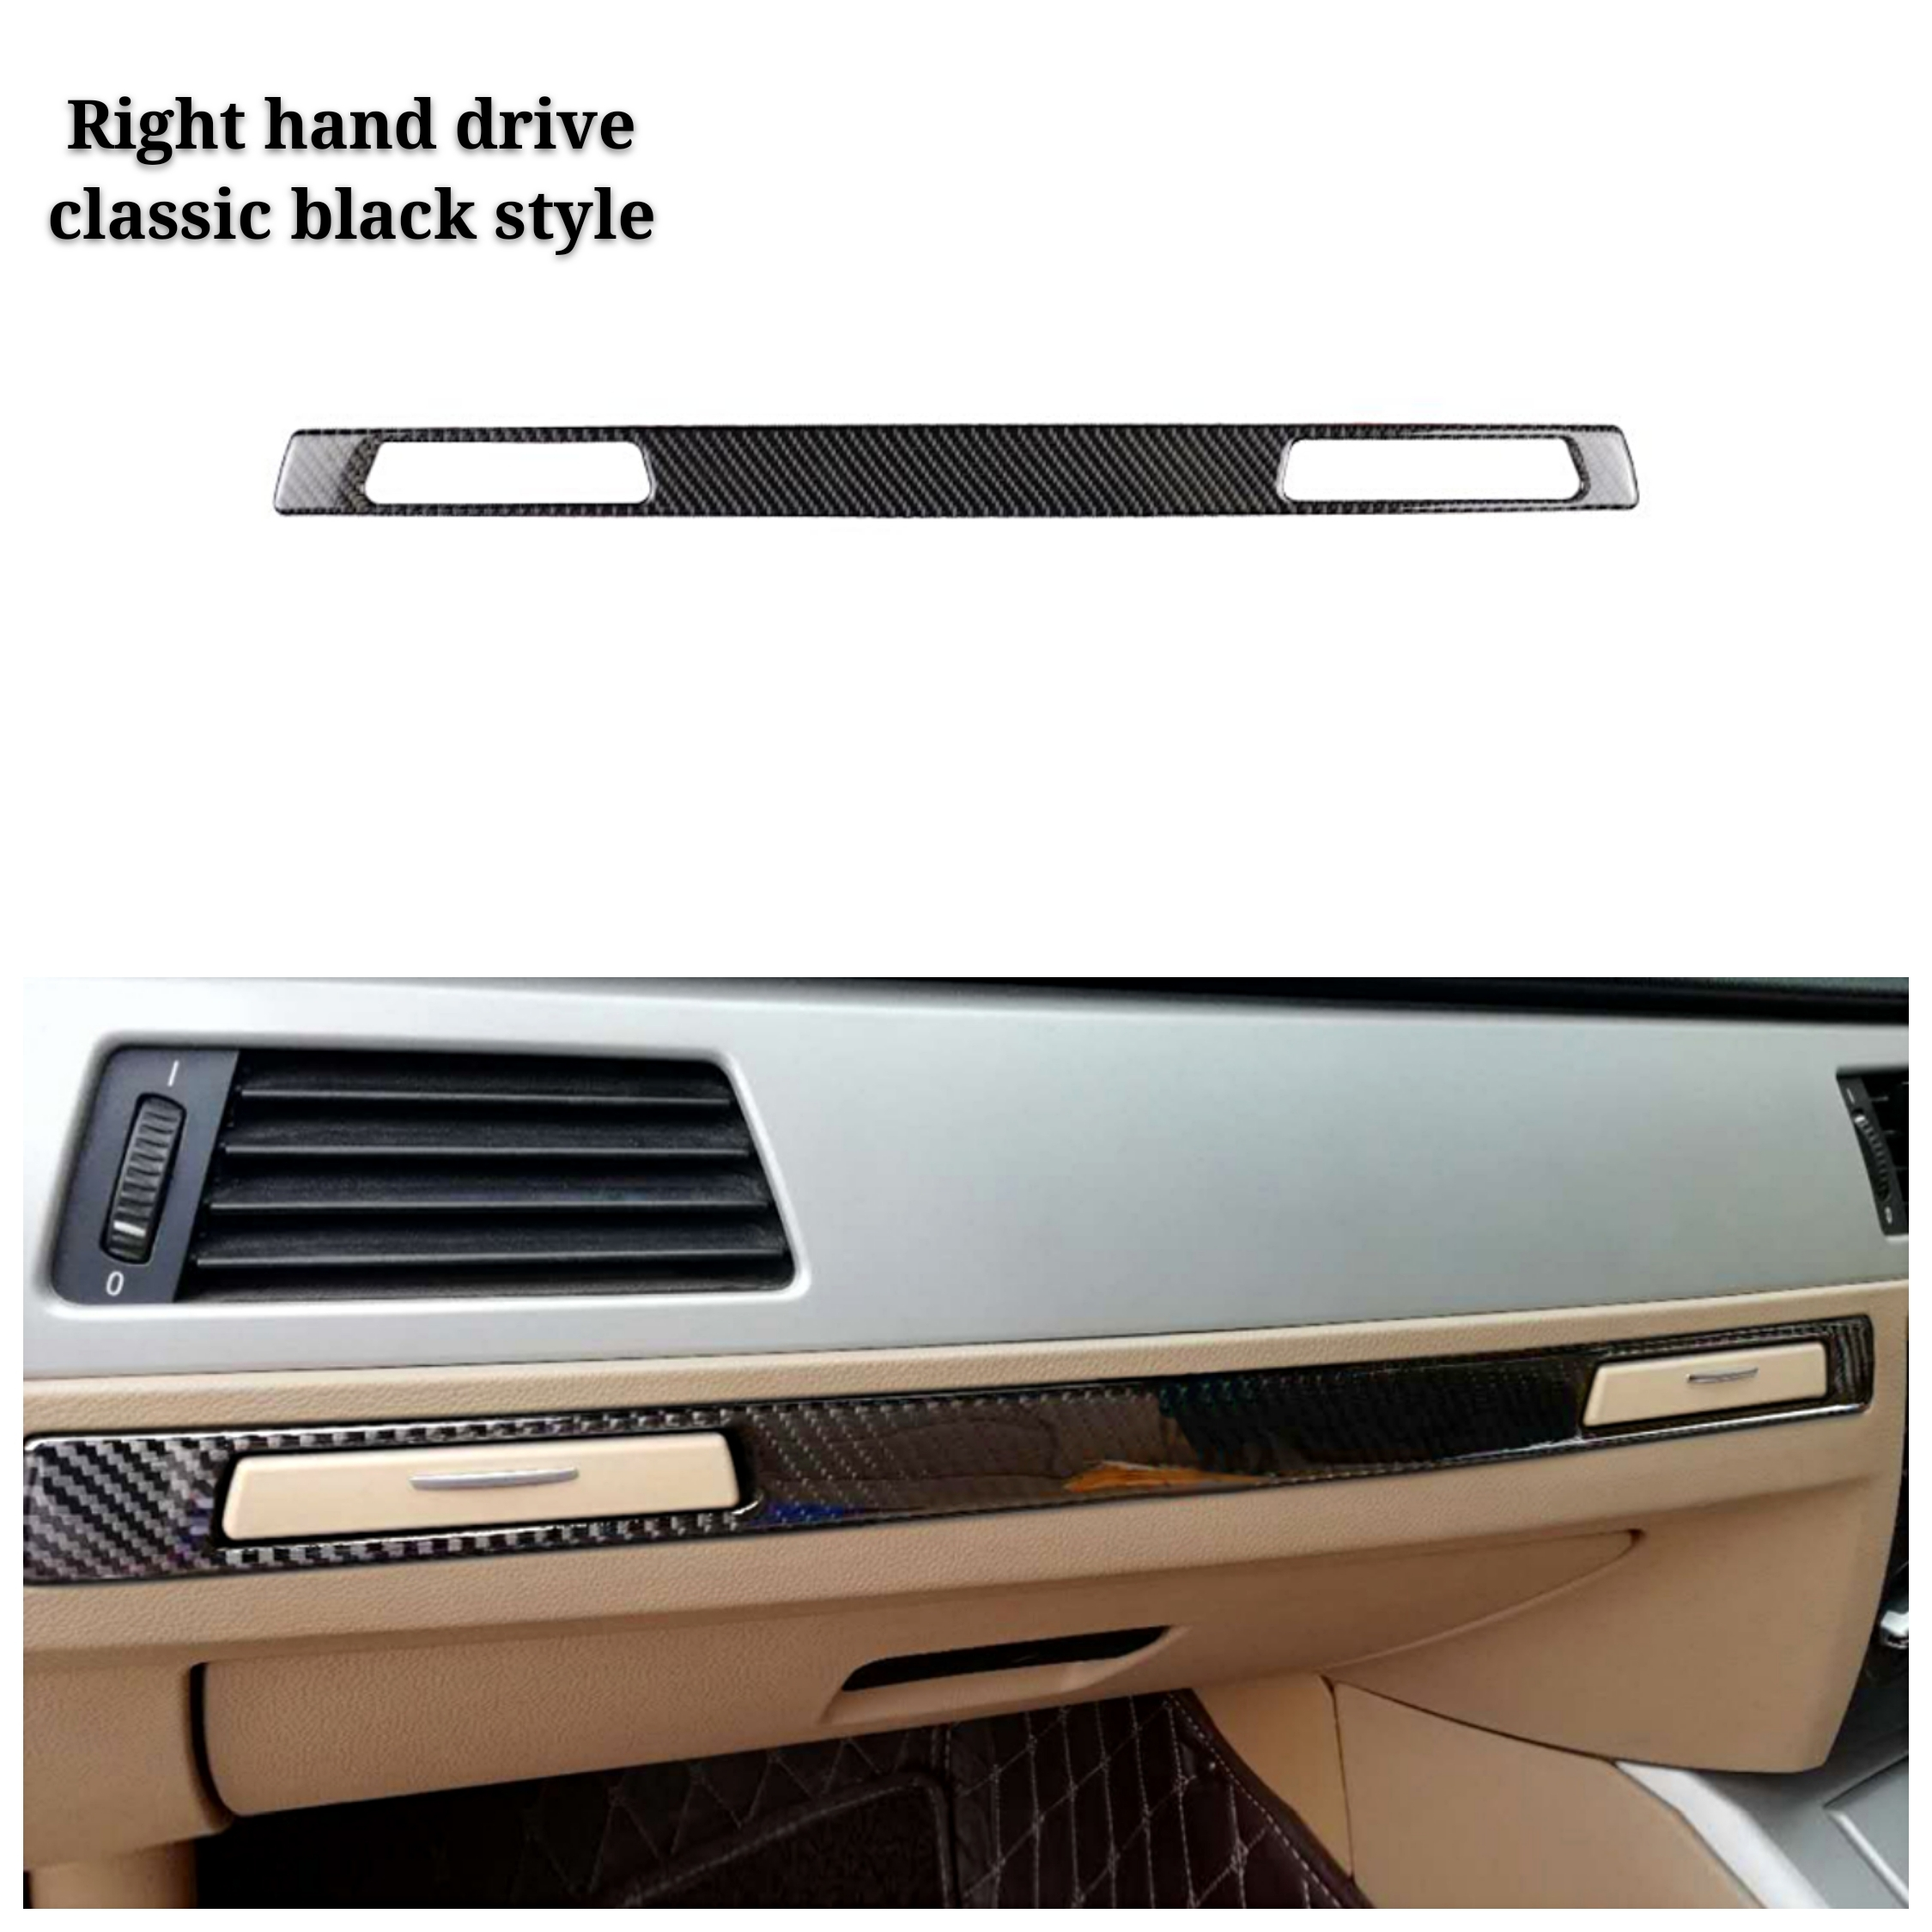 Car <font><b>Interior</b></font> Accessories <font><b>Carbon</b></font> <font><b>Fiber</b></font> Decal Sticker Copilot Water Cup Holder Panel Cover For <font><b>BMW</b></font> <font><b>E90</b></font> E92 E93 3 Series LHD RHD image